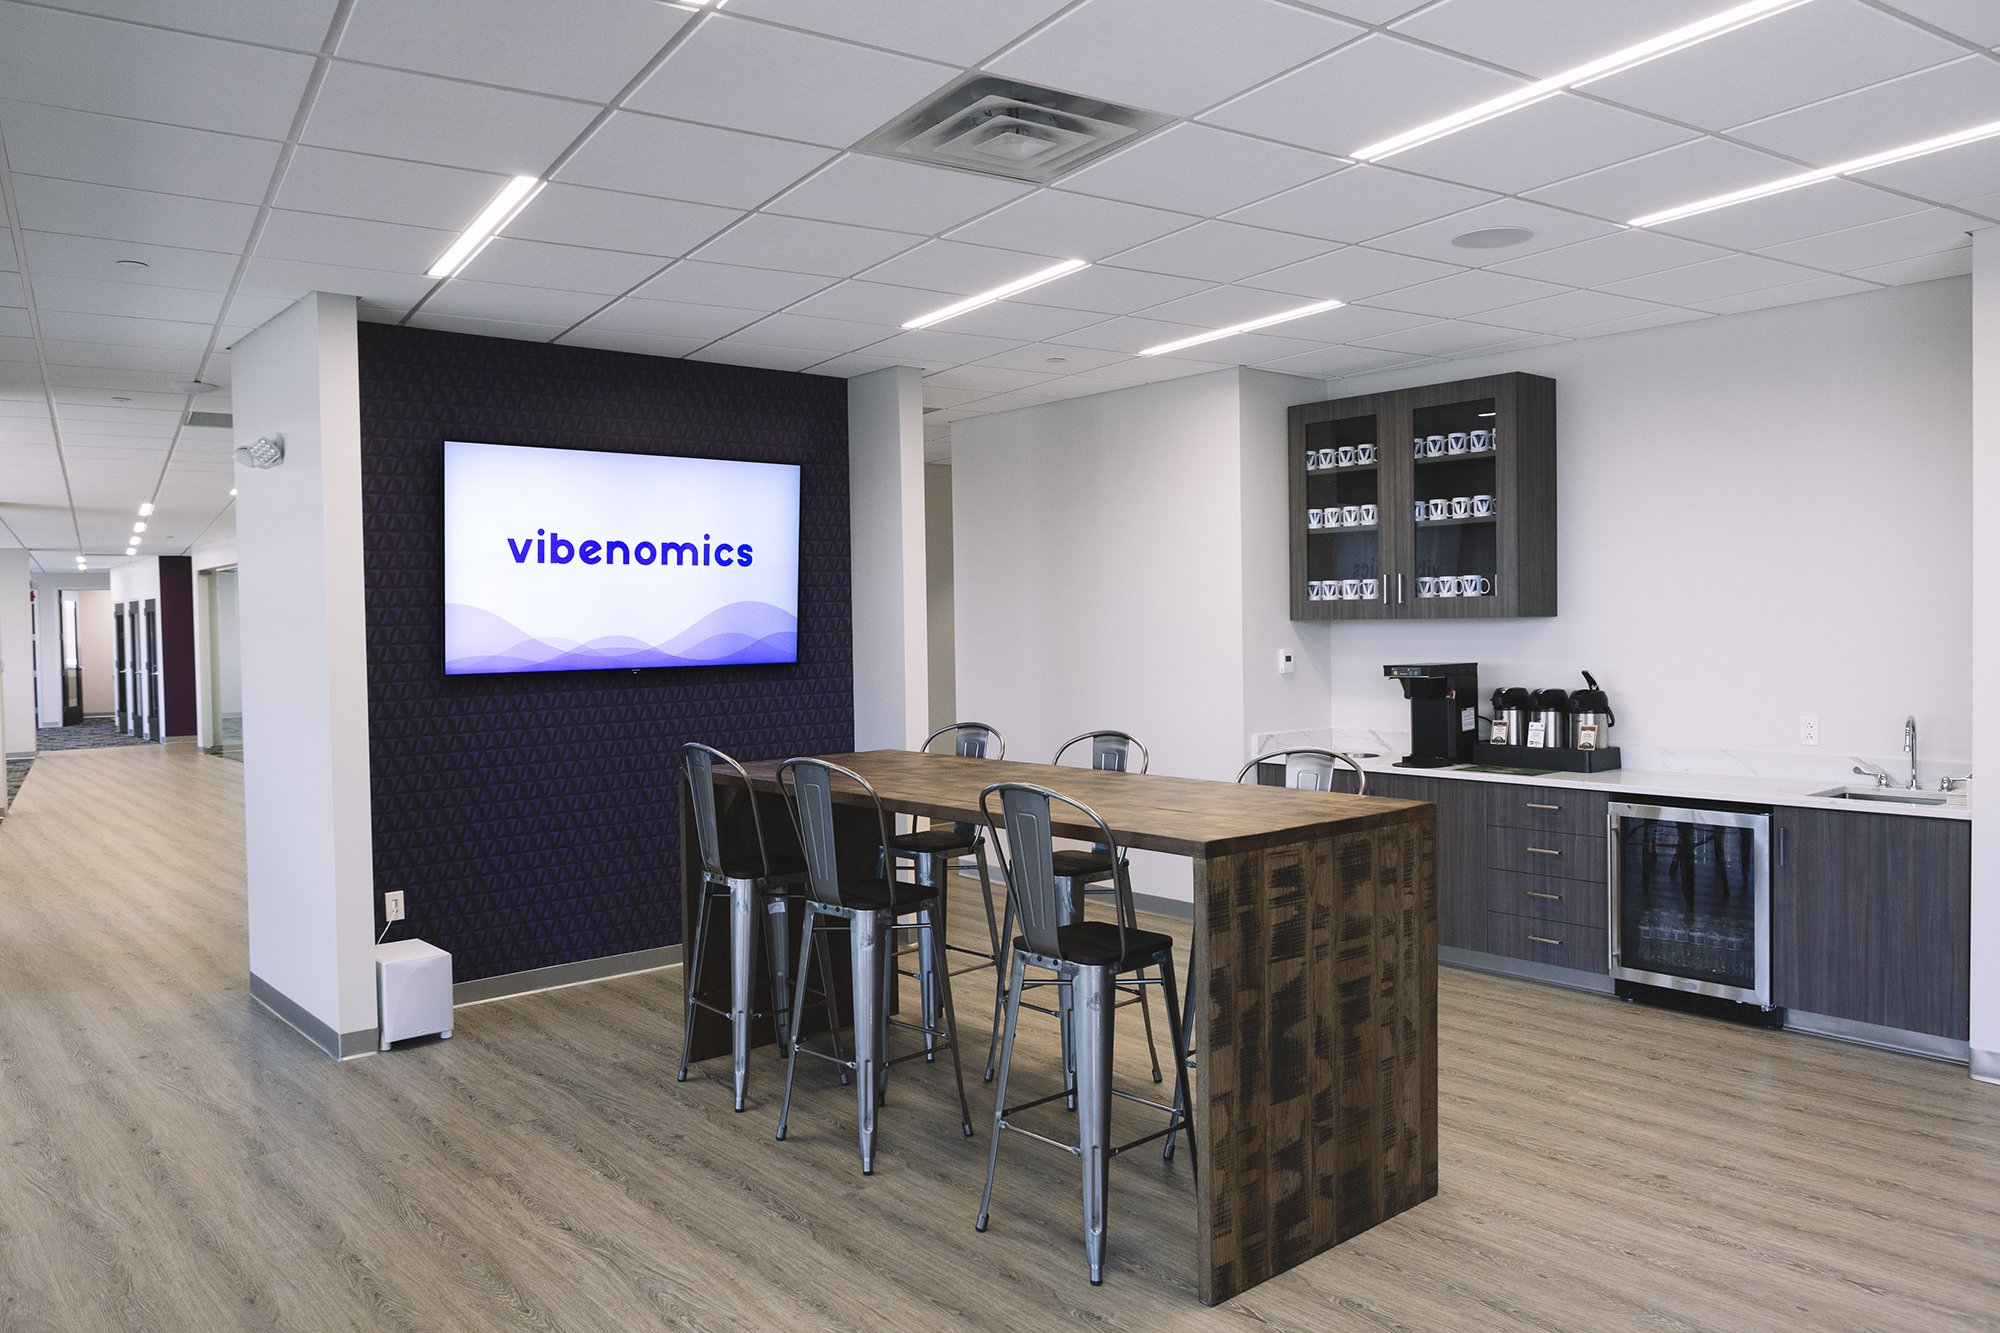 lauth-group-vibenomics-office-design-brand-identity-indianapolis-indiana-11